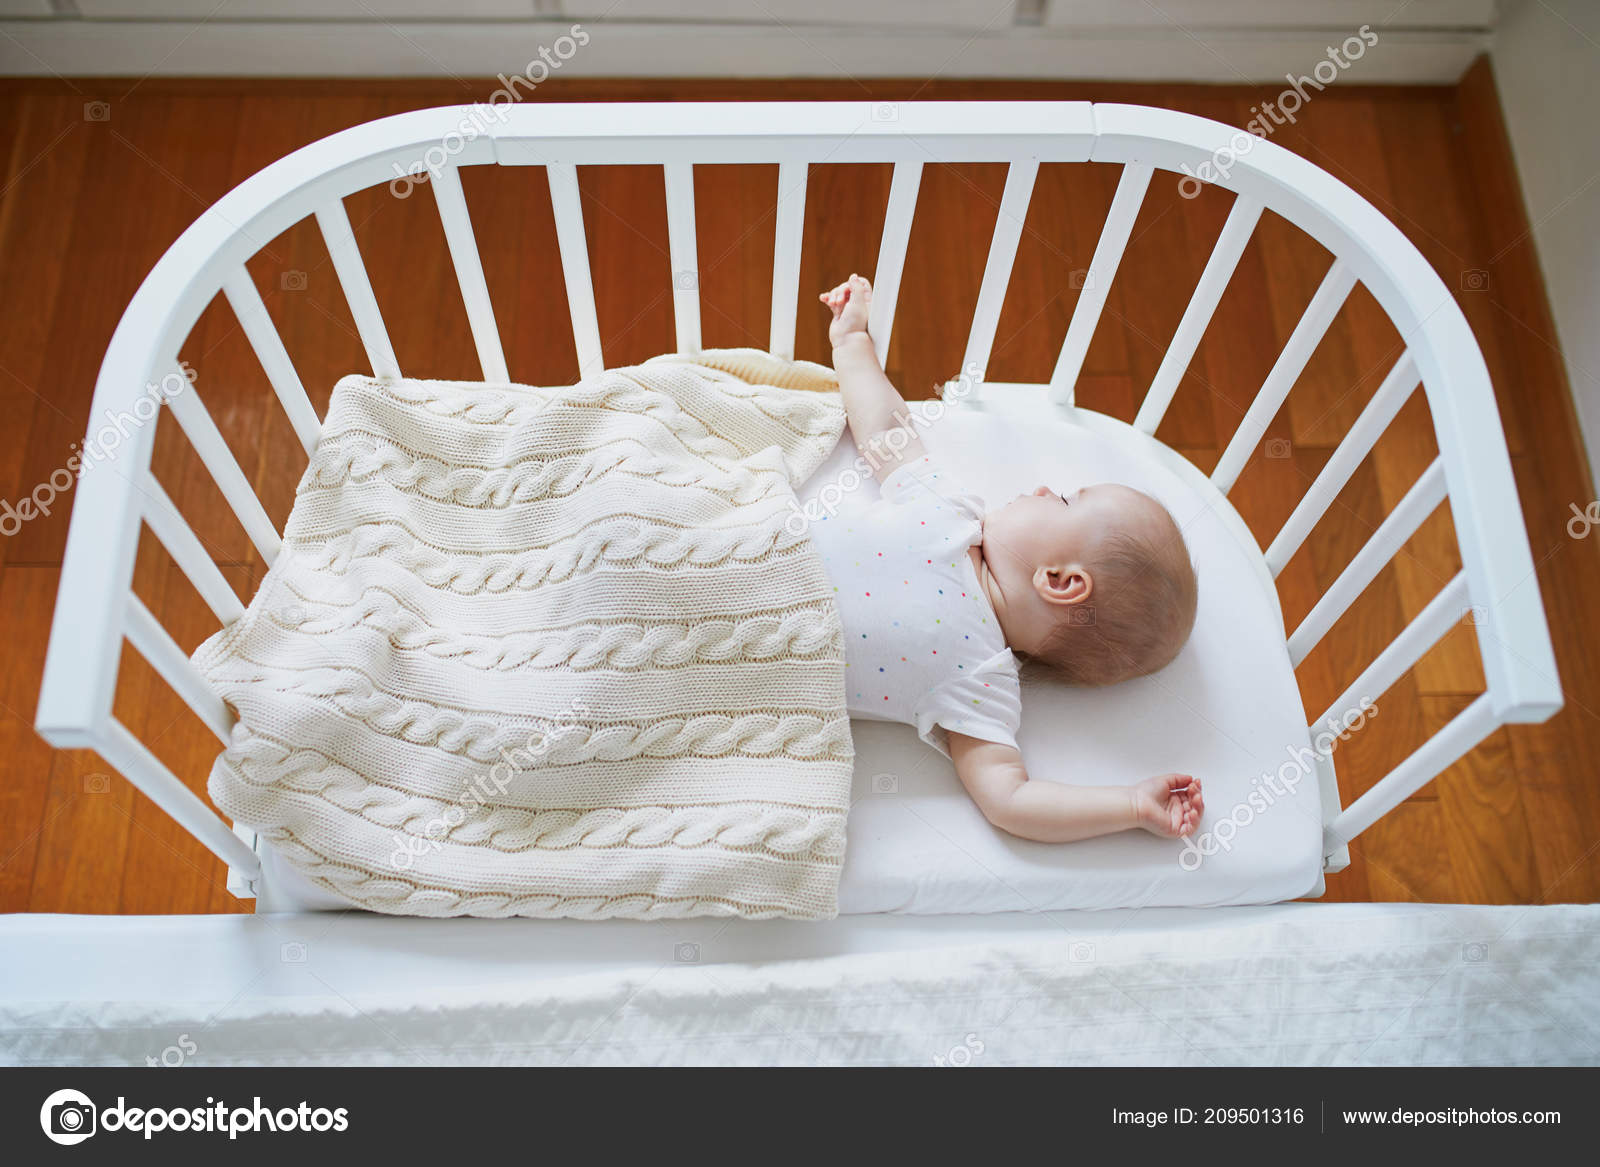 What Can Baby Sleep In Next To Bed Pictures Co Sleeper Adorable Baby Girl Sleeping Sleeper